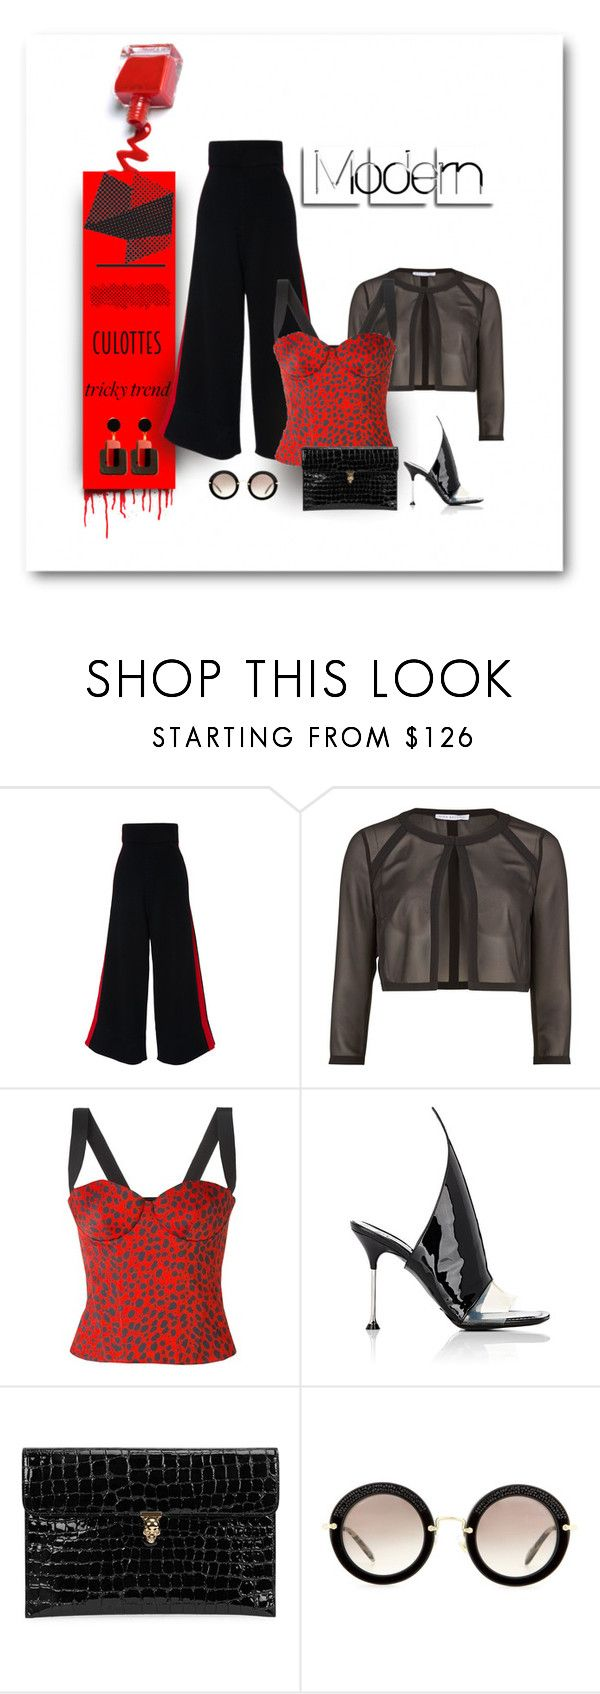 """Red Dots of Movement"" by michelletheaflack ❤ liked on Polyvore featuring Stella Jean, Gina Bacconi, FAUSTO PUGLISI, Balenciaga, Alexander McQueen, Miu Miu, Marni, TrickyTrend, polyvorecontests and culottes"